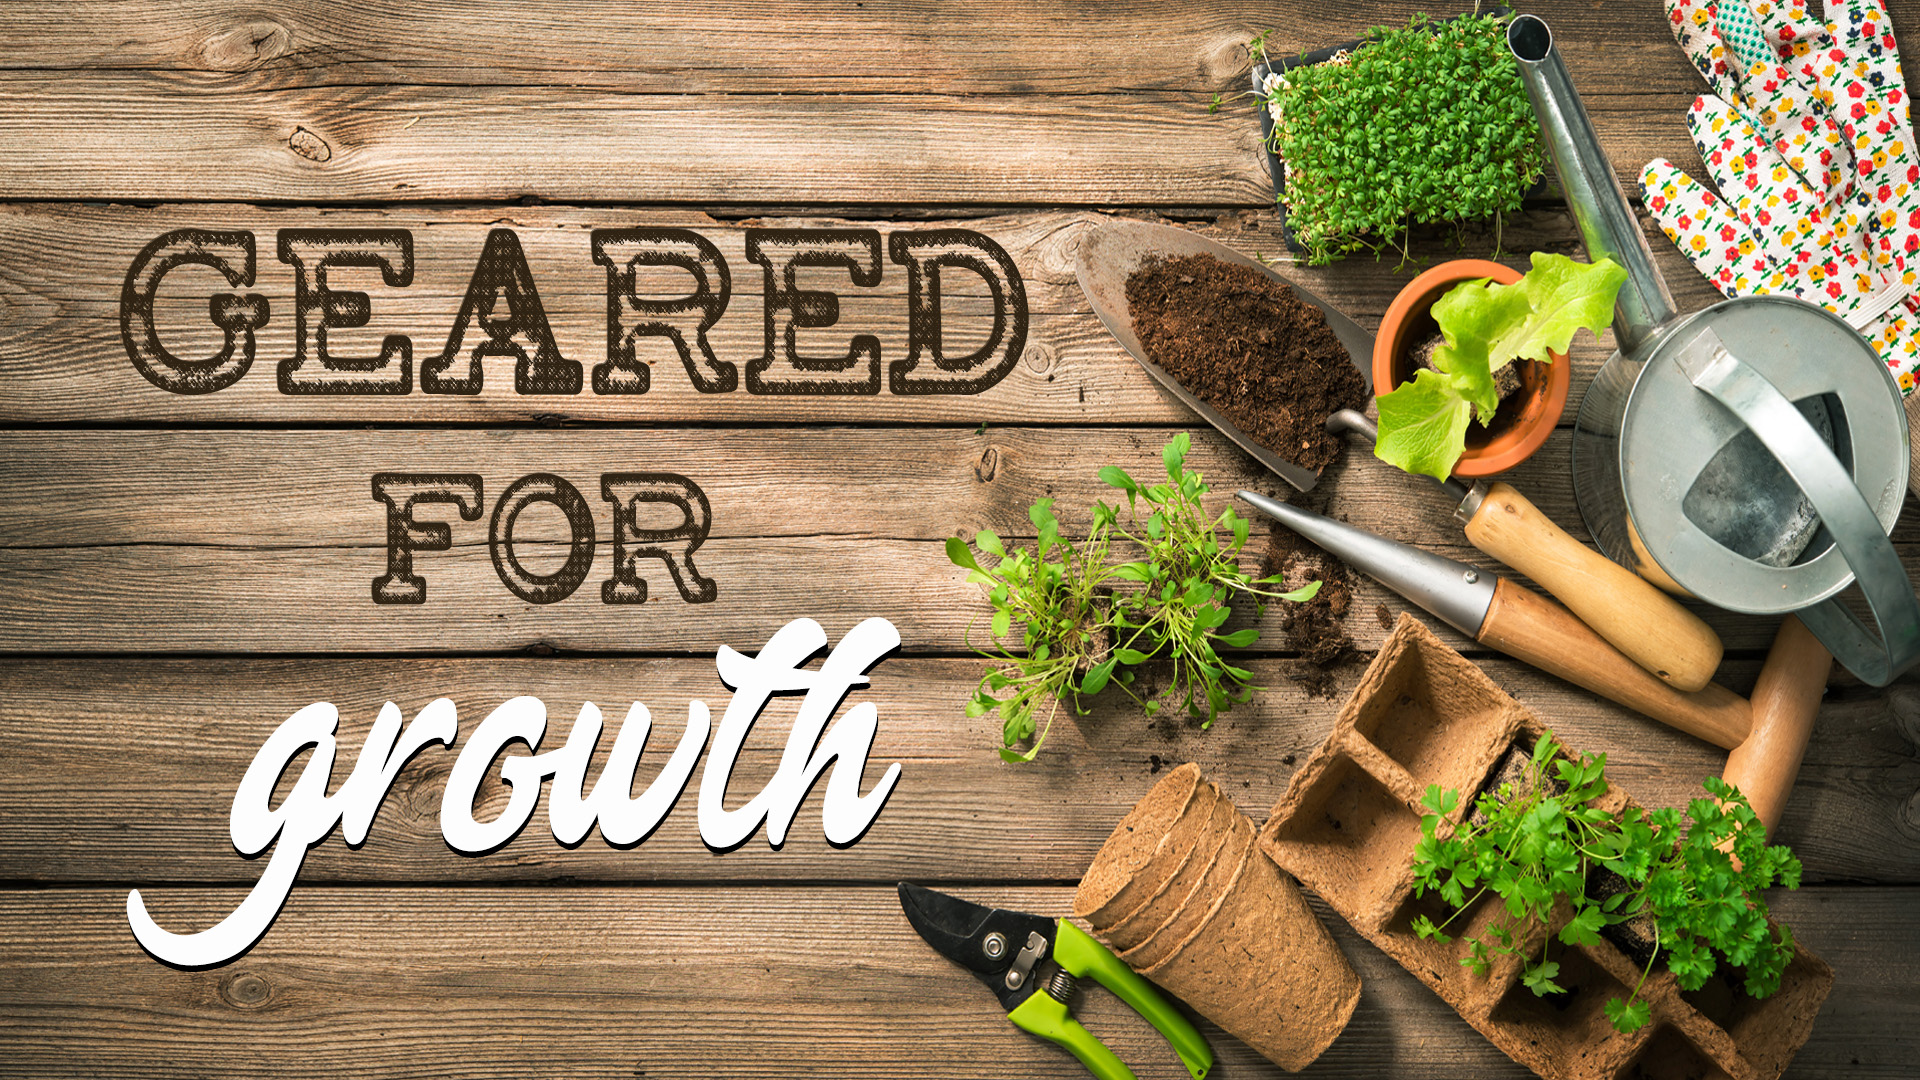 Vision 2018 - Geared for growth -- 1920x1080.jpg